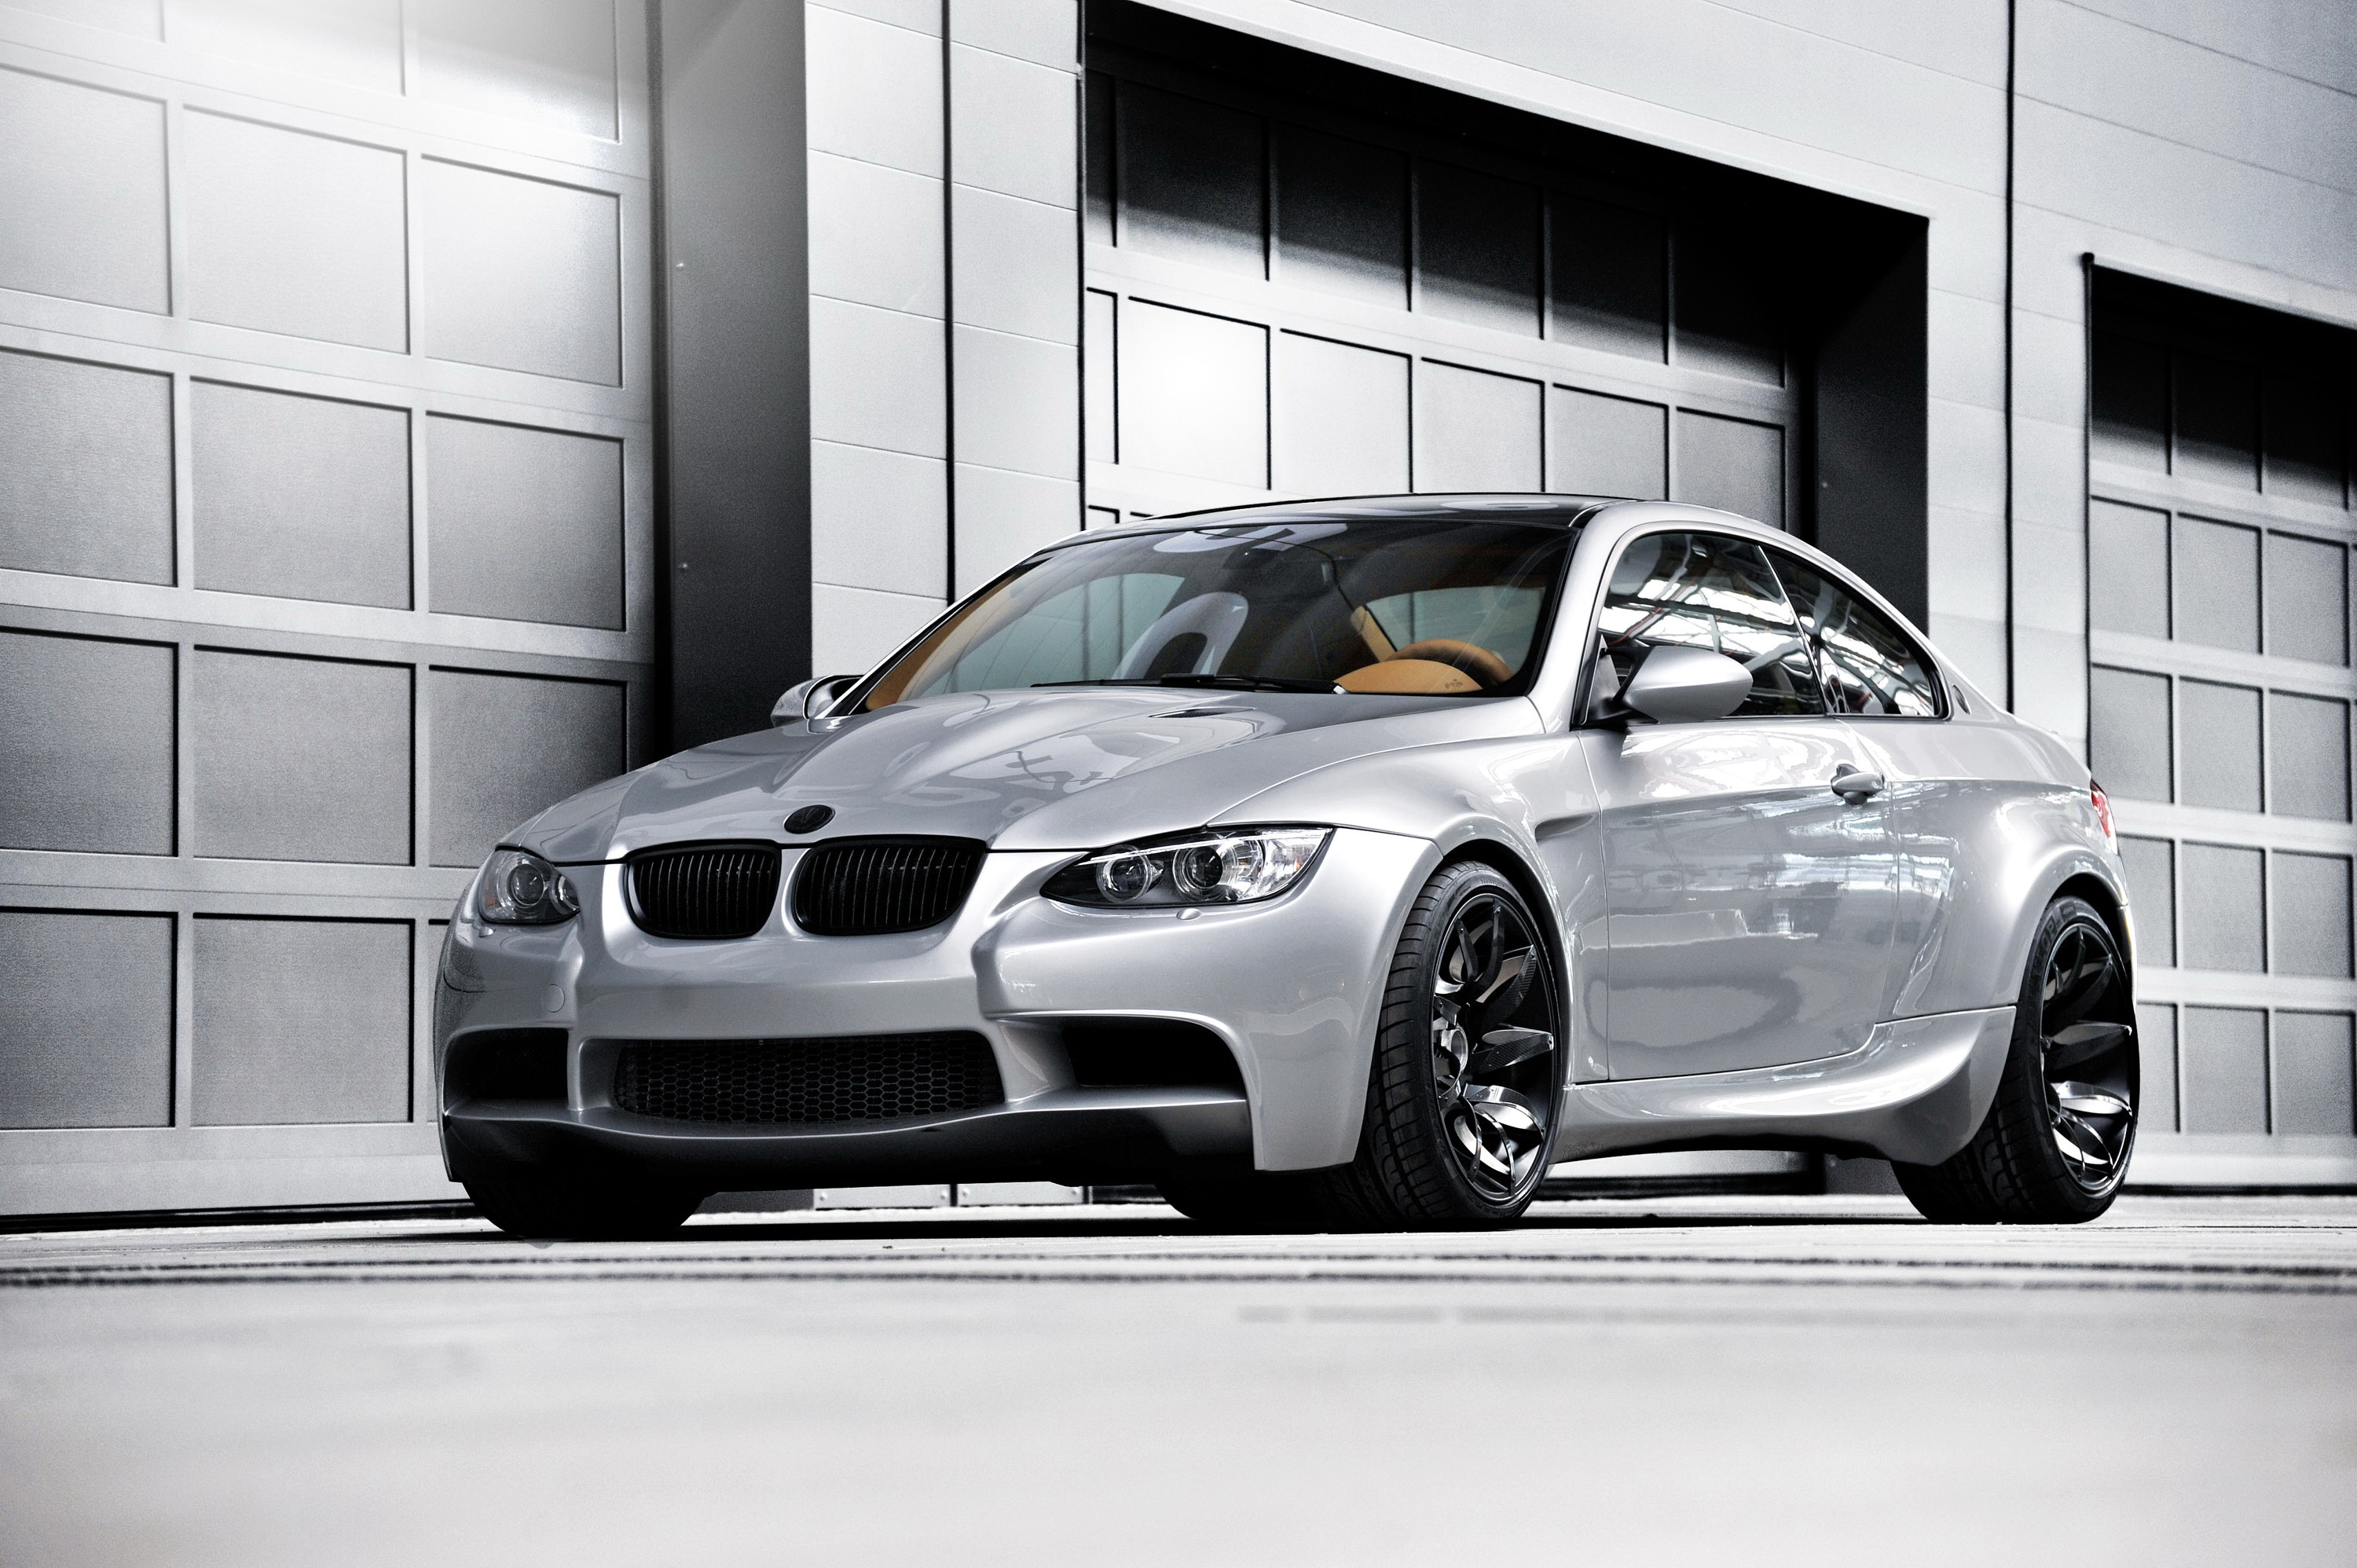 Bmw: BMW M3 Wallpapers, Pictures, Images